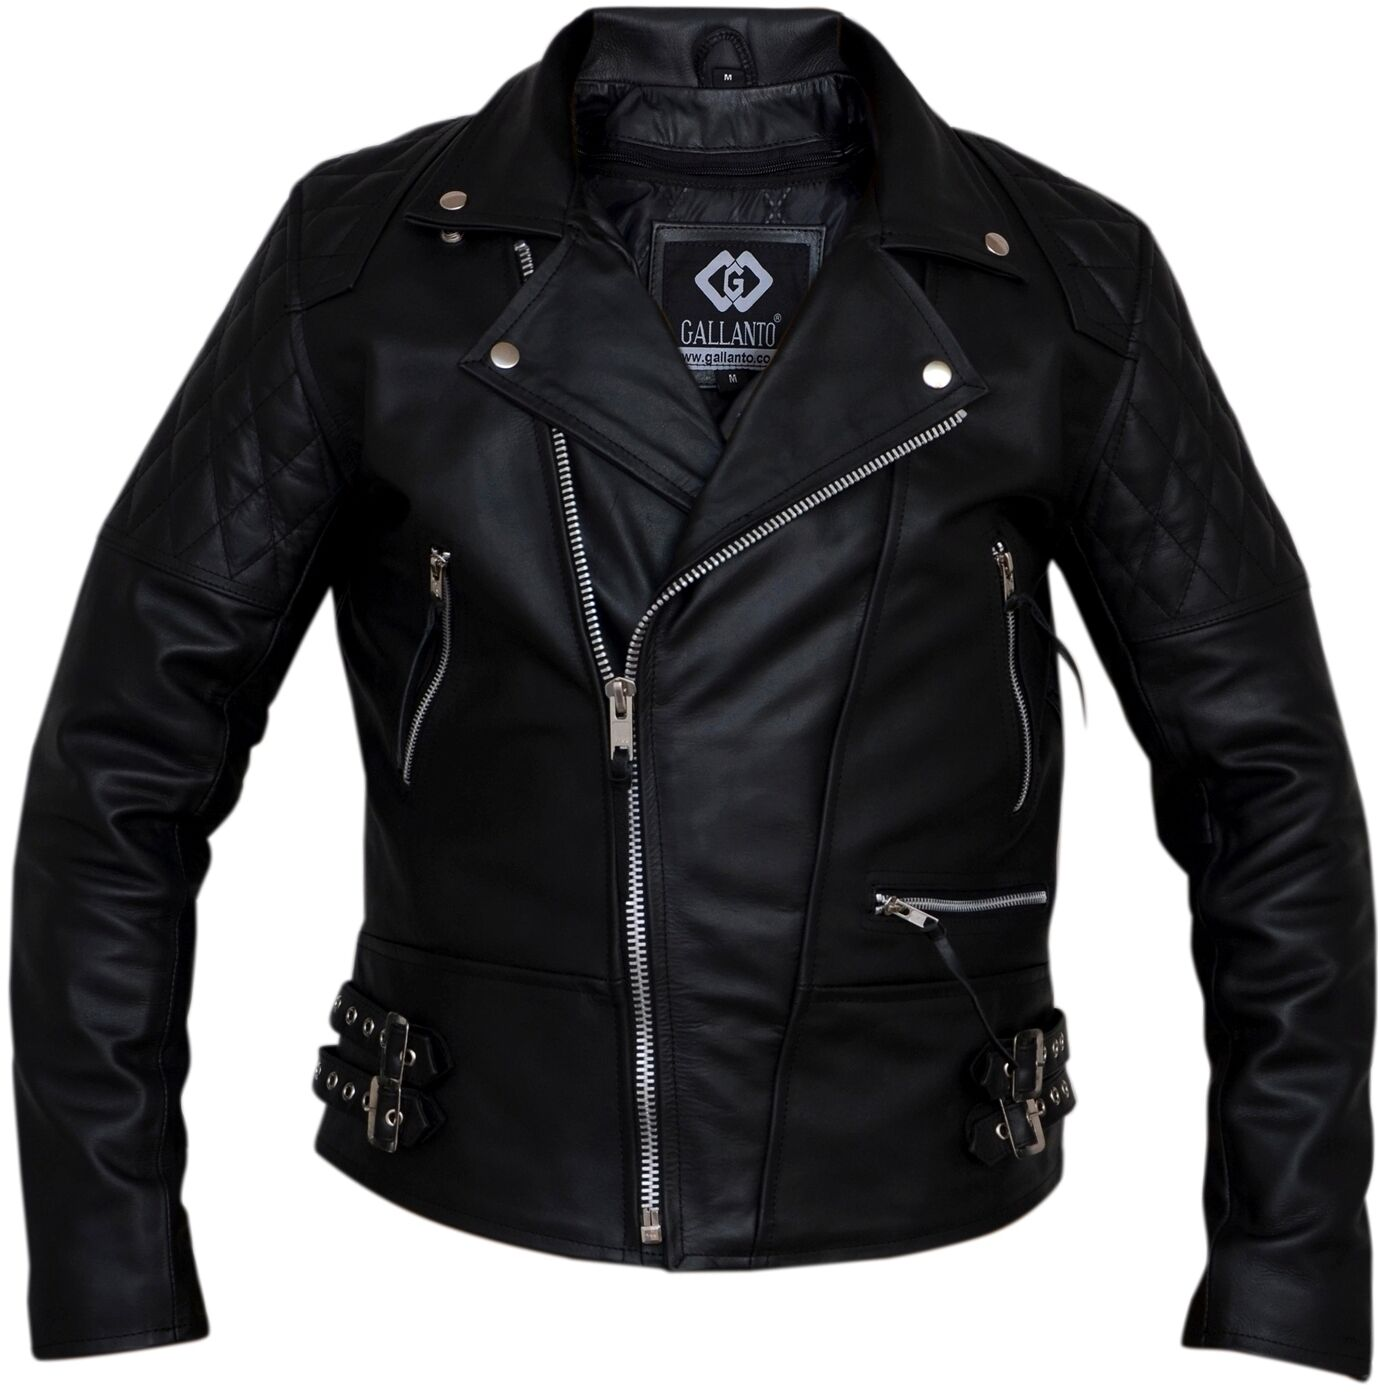 Diamond leather jacket